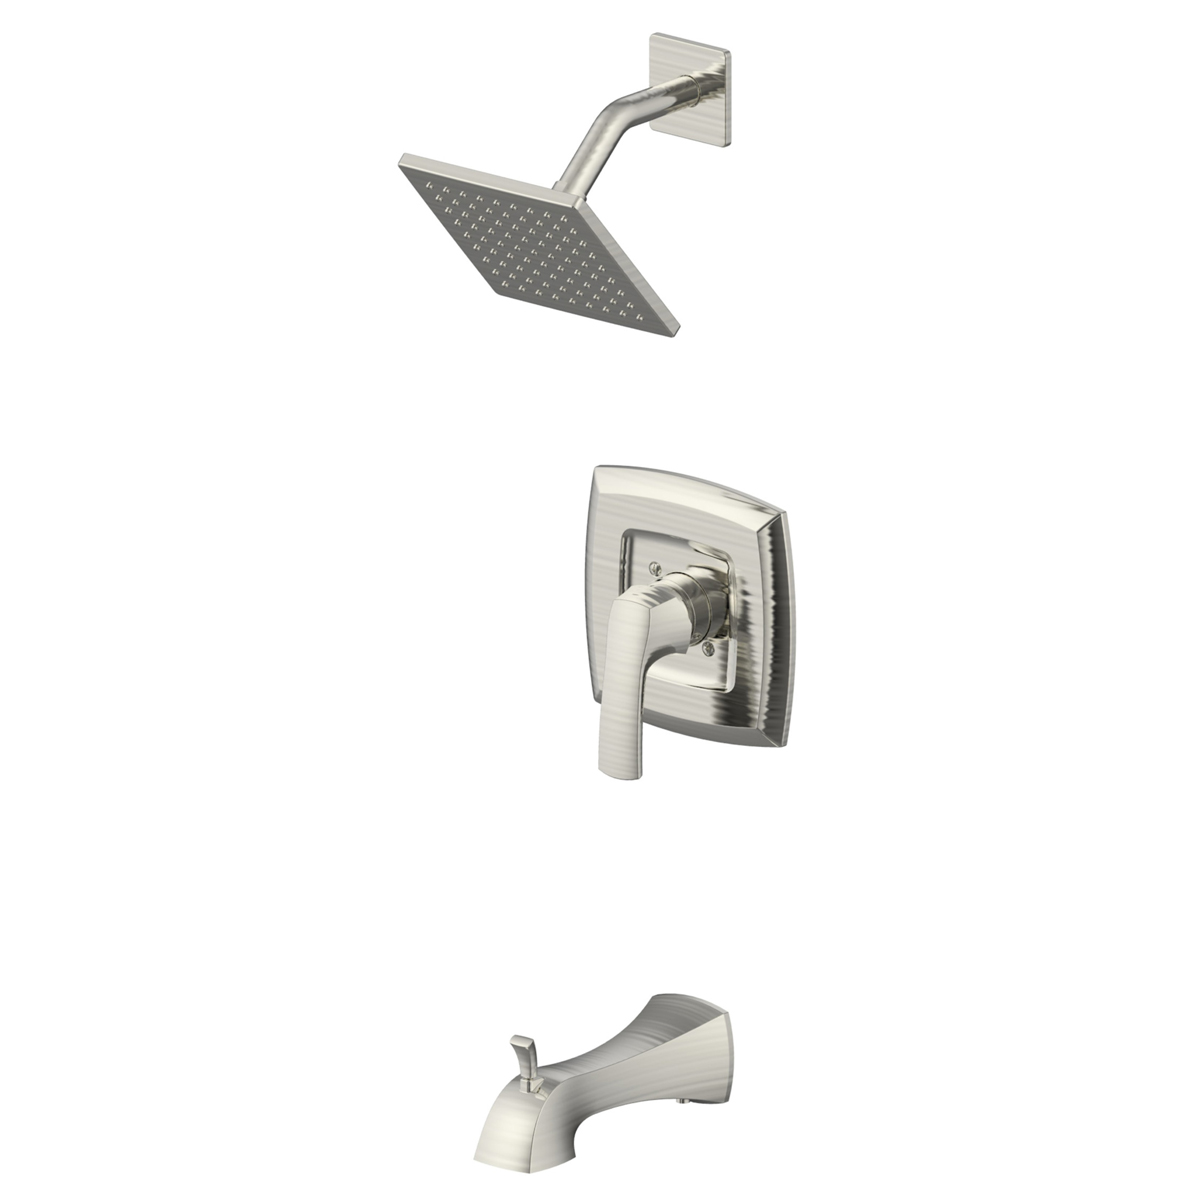 192-6420 — Tub / Shower Combo